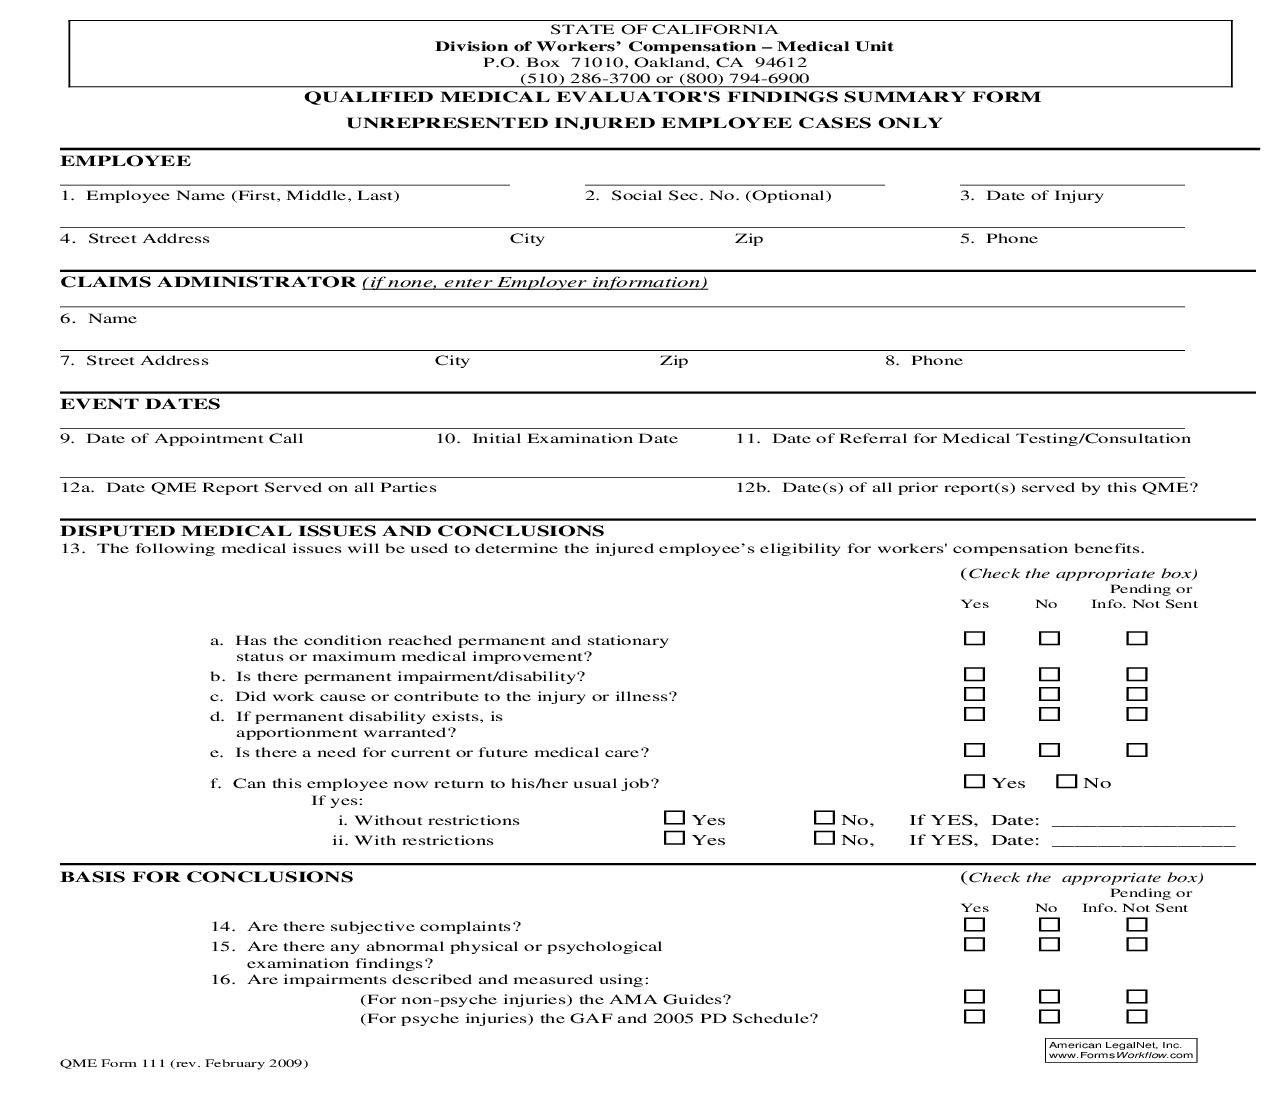 Qualified Or Agreed Medical Evaluator Findings Summary Form {QME 111} | Pdf Fpdf Doc Docx | California